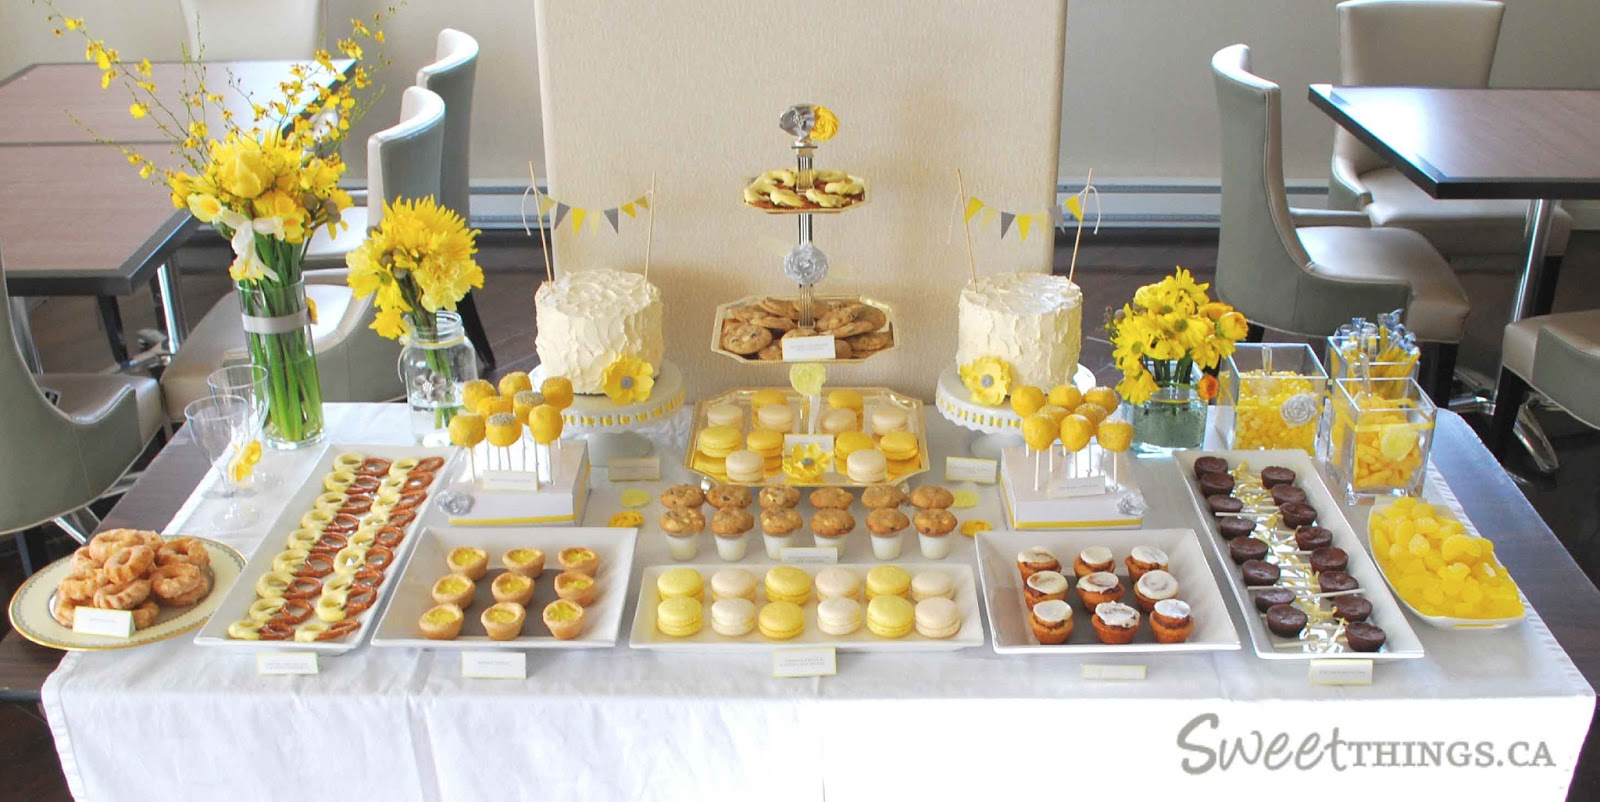 Sweetthings baby shower sweet table - Decorar la mesa ...